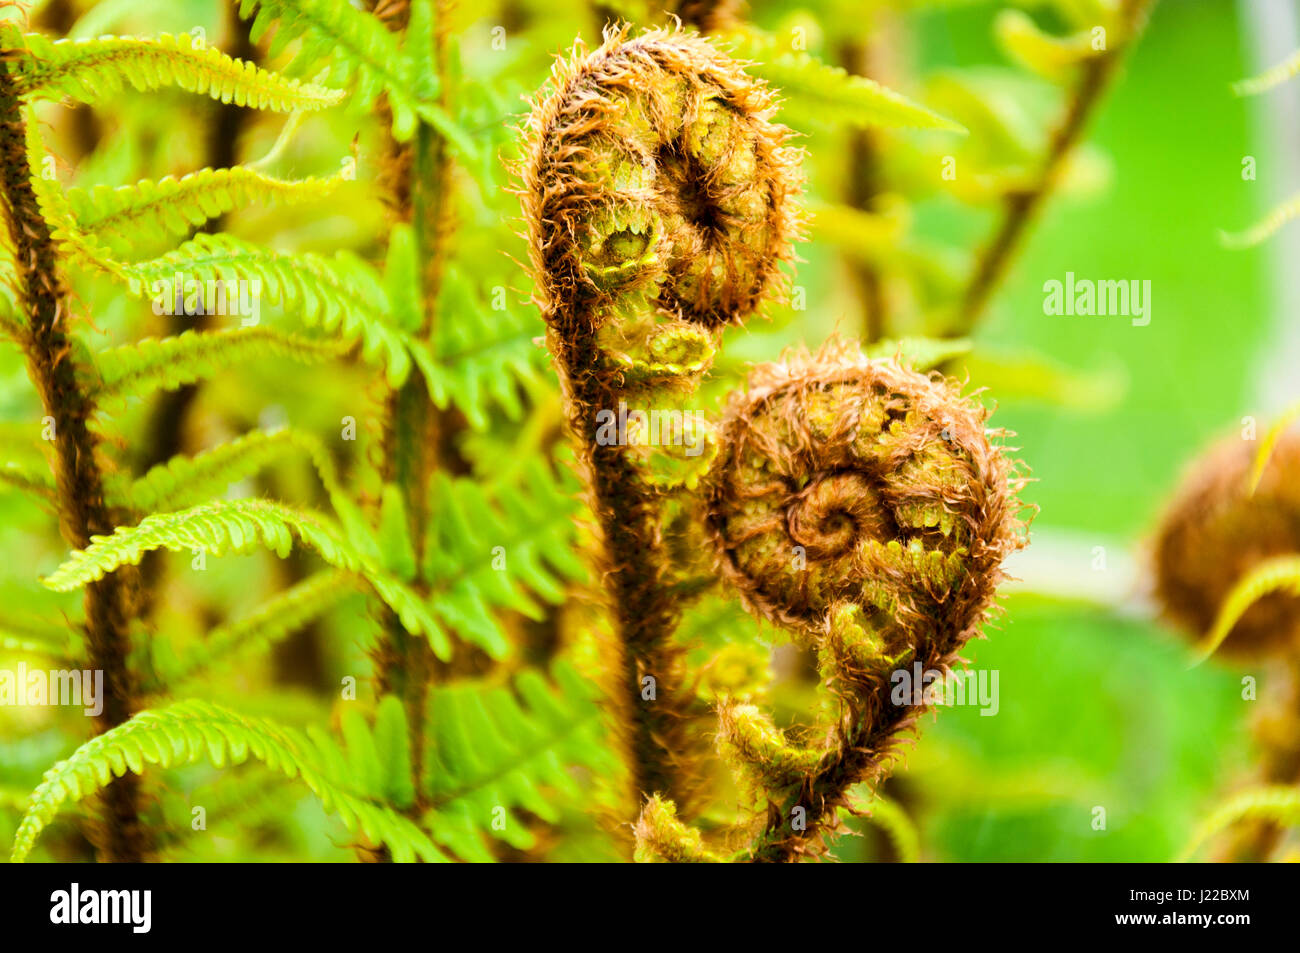 Fern unrolling a new frond. New growth in spring. Ferns renewal. Rebirth. - Stock Image